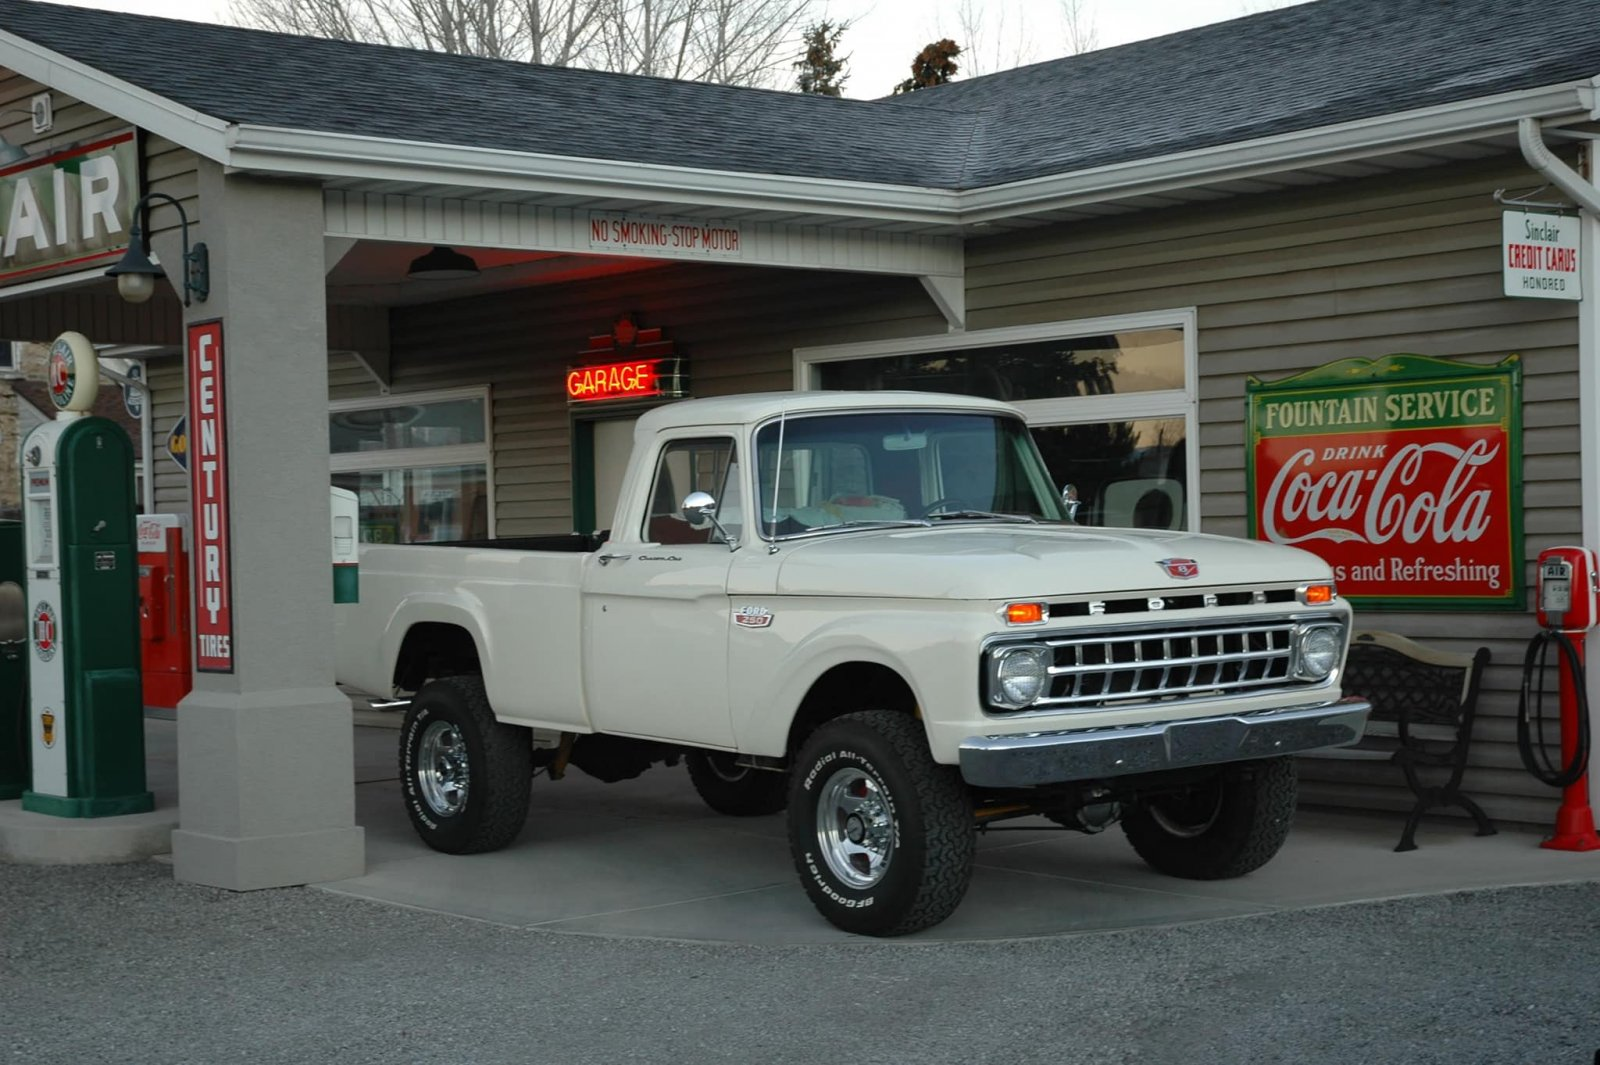 1965 Ford F250 Clean Rare Truck With Unique Color 2.jpg